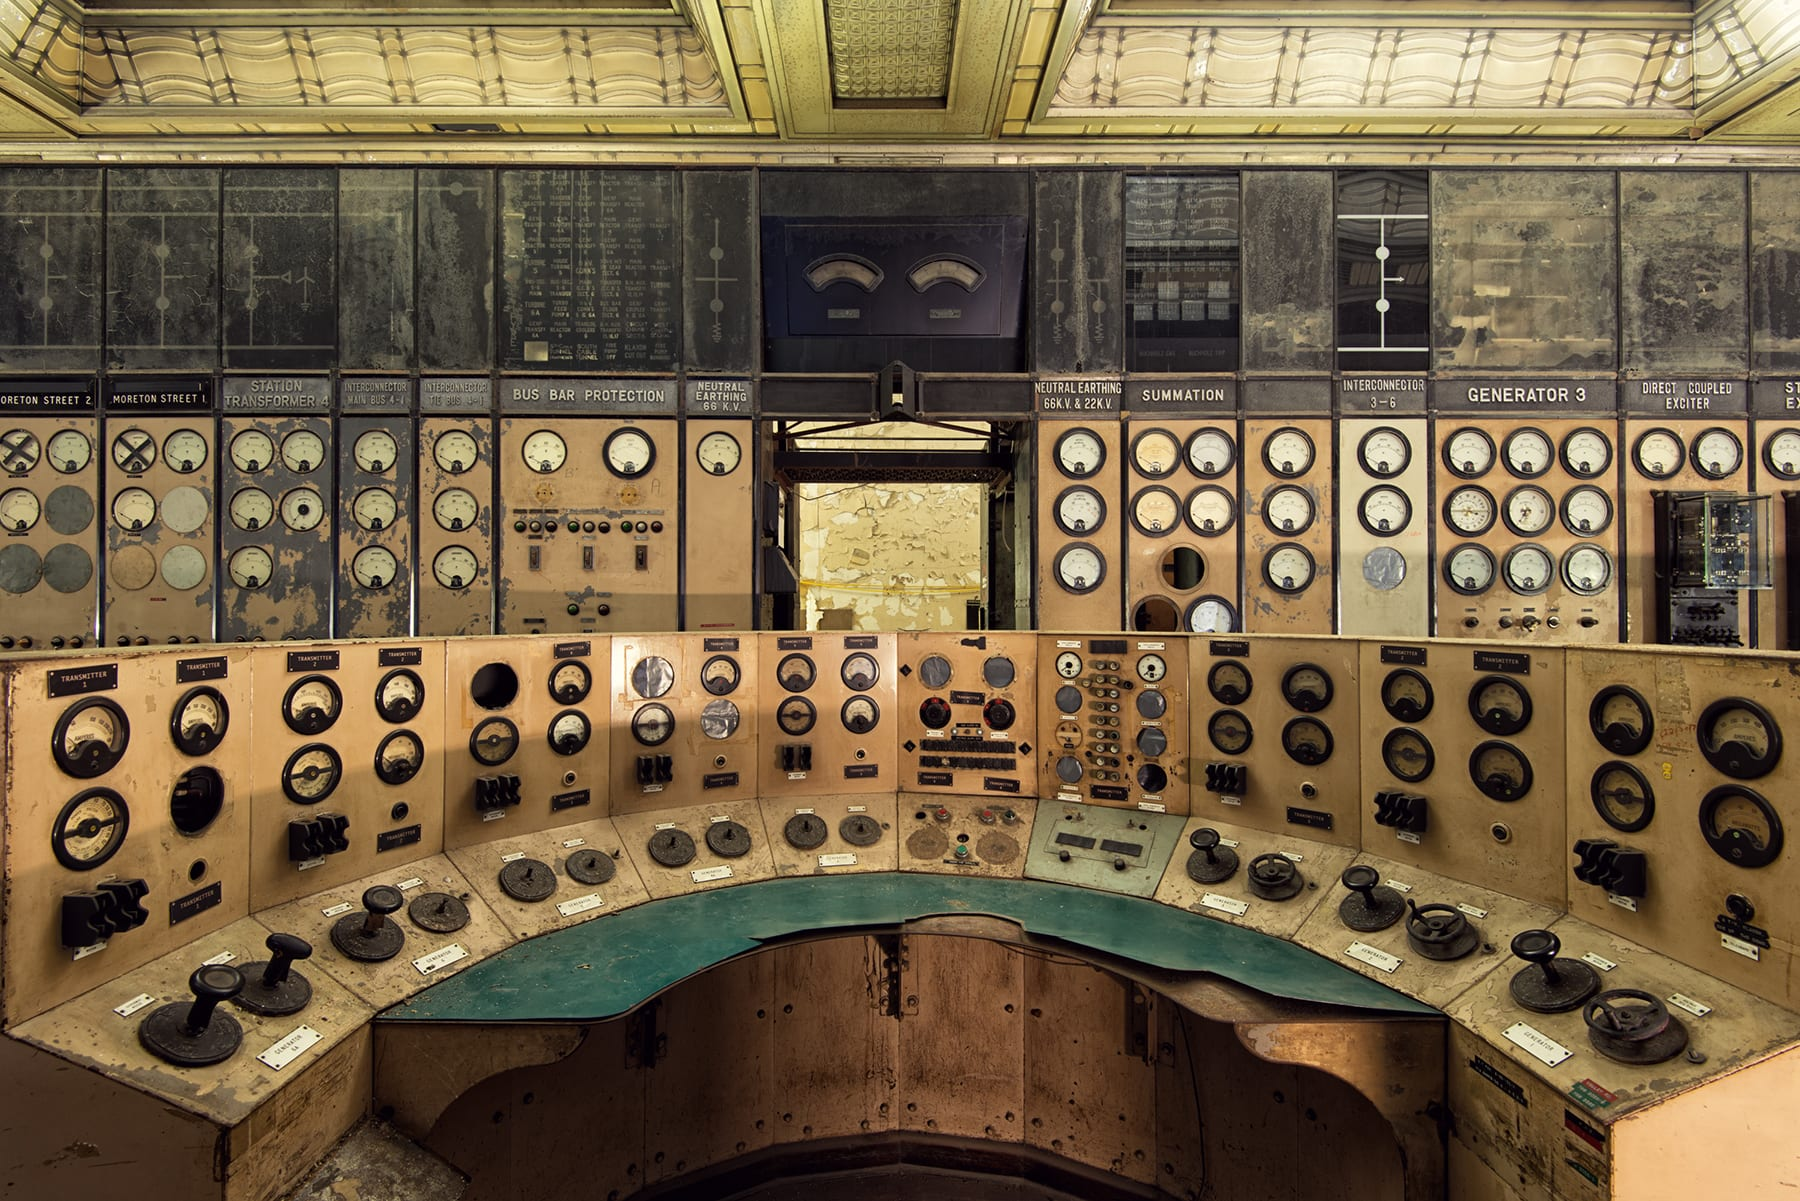 Battersea Power Station Control Room A © Gina Soden